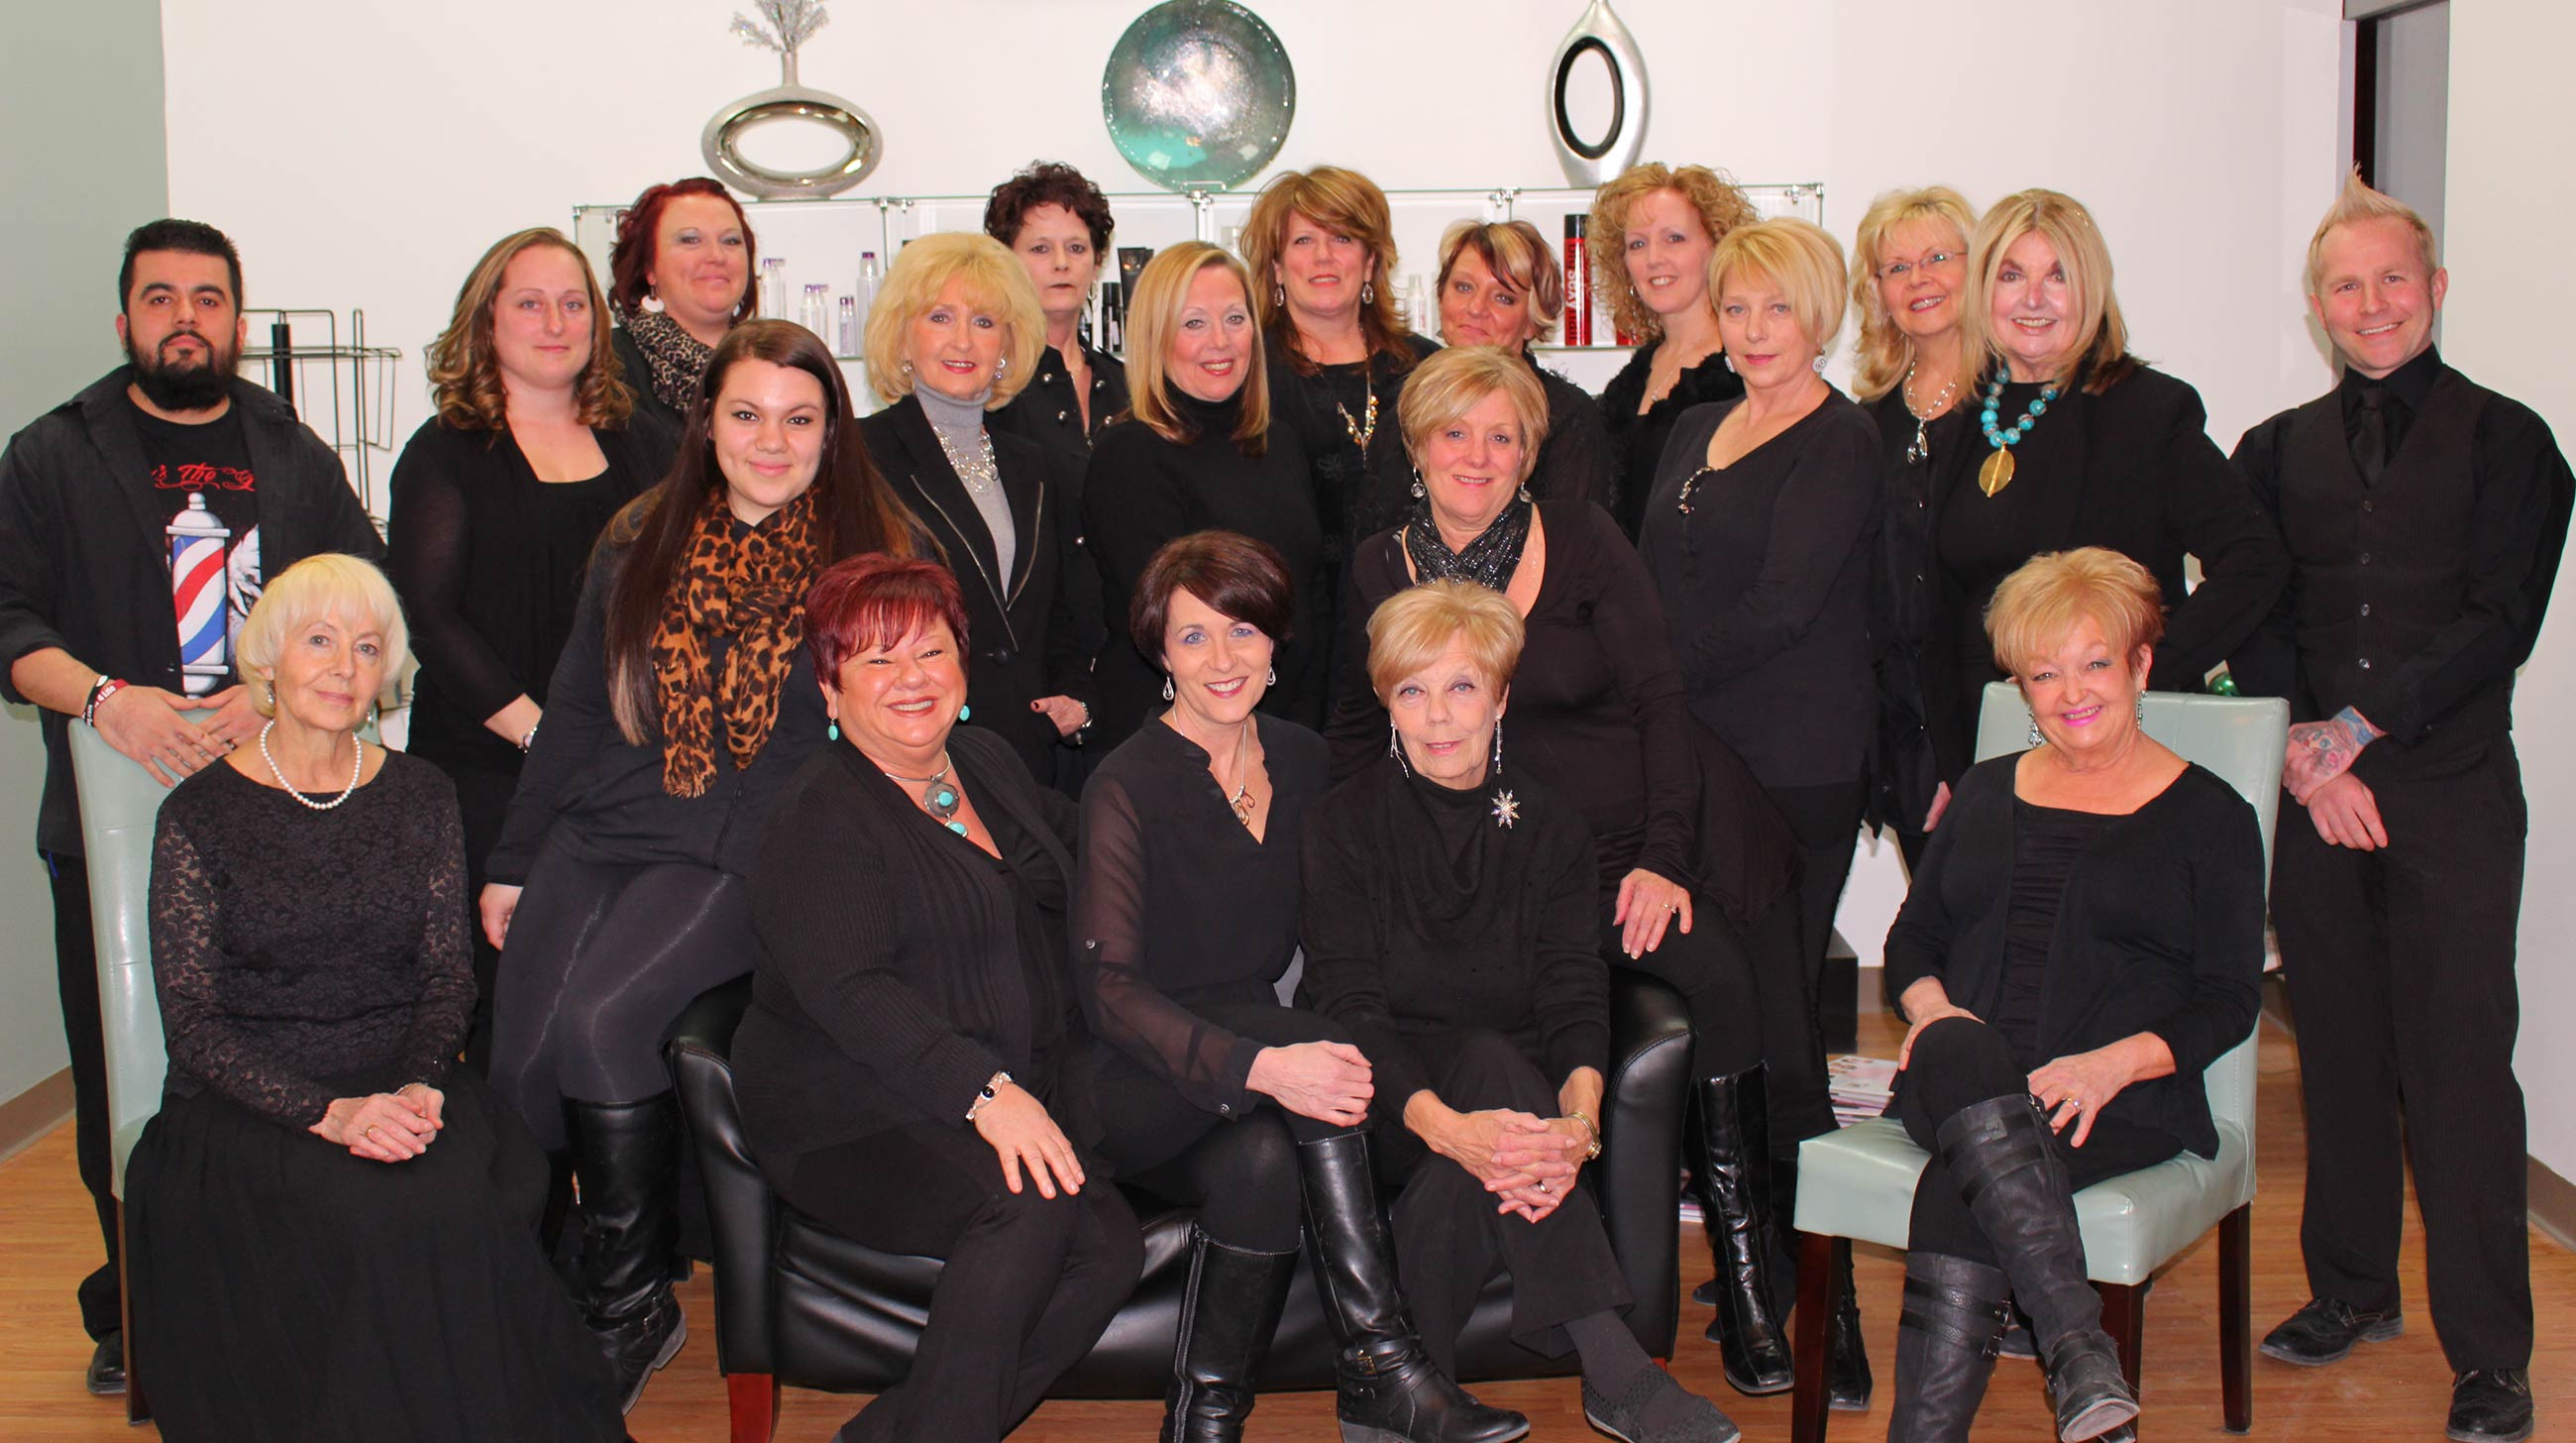 Staff at Hair Unique Salon Norwich CT